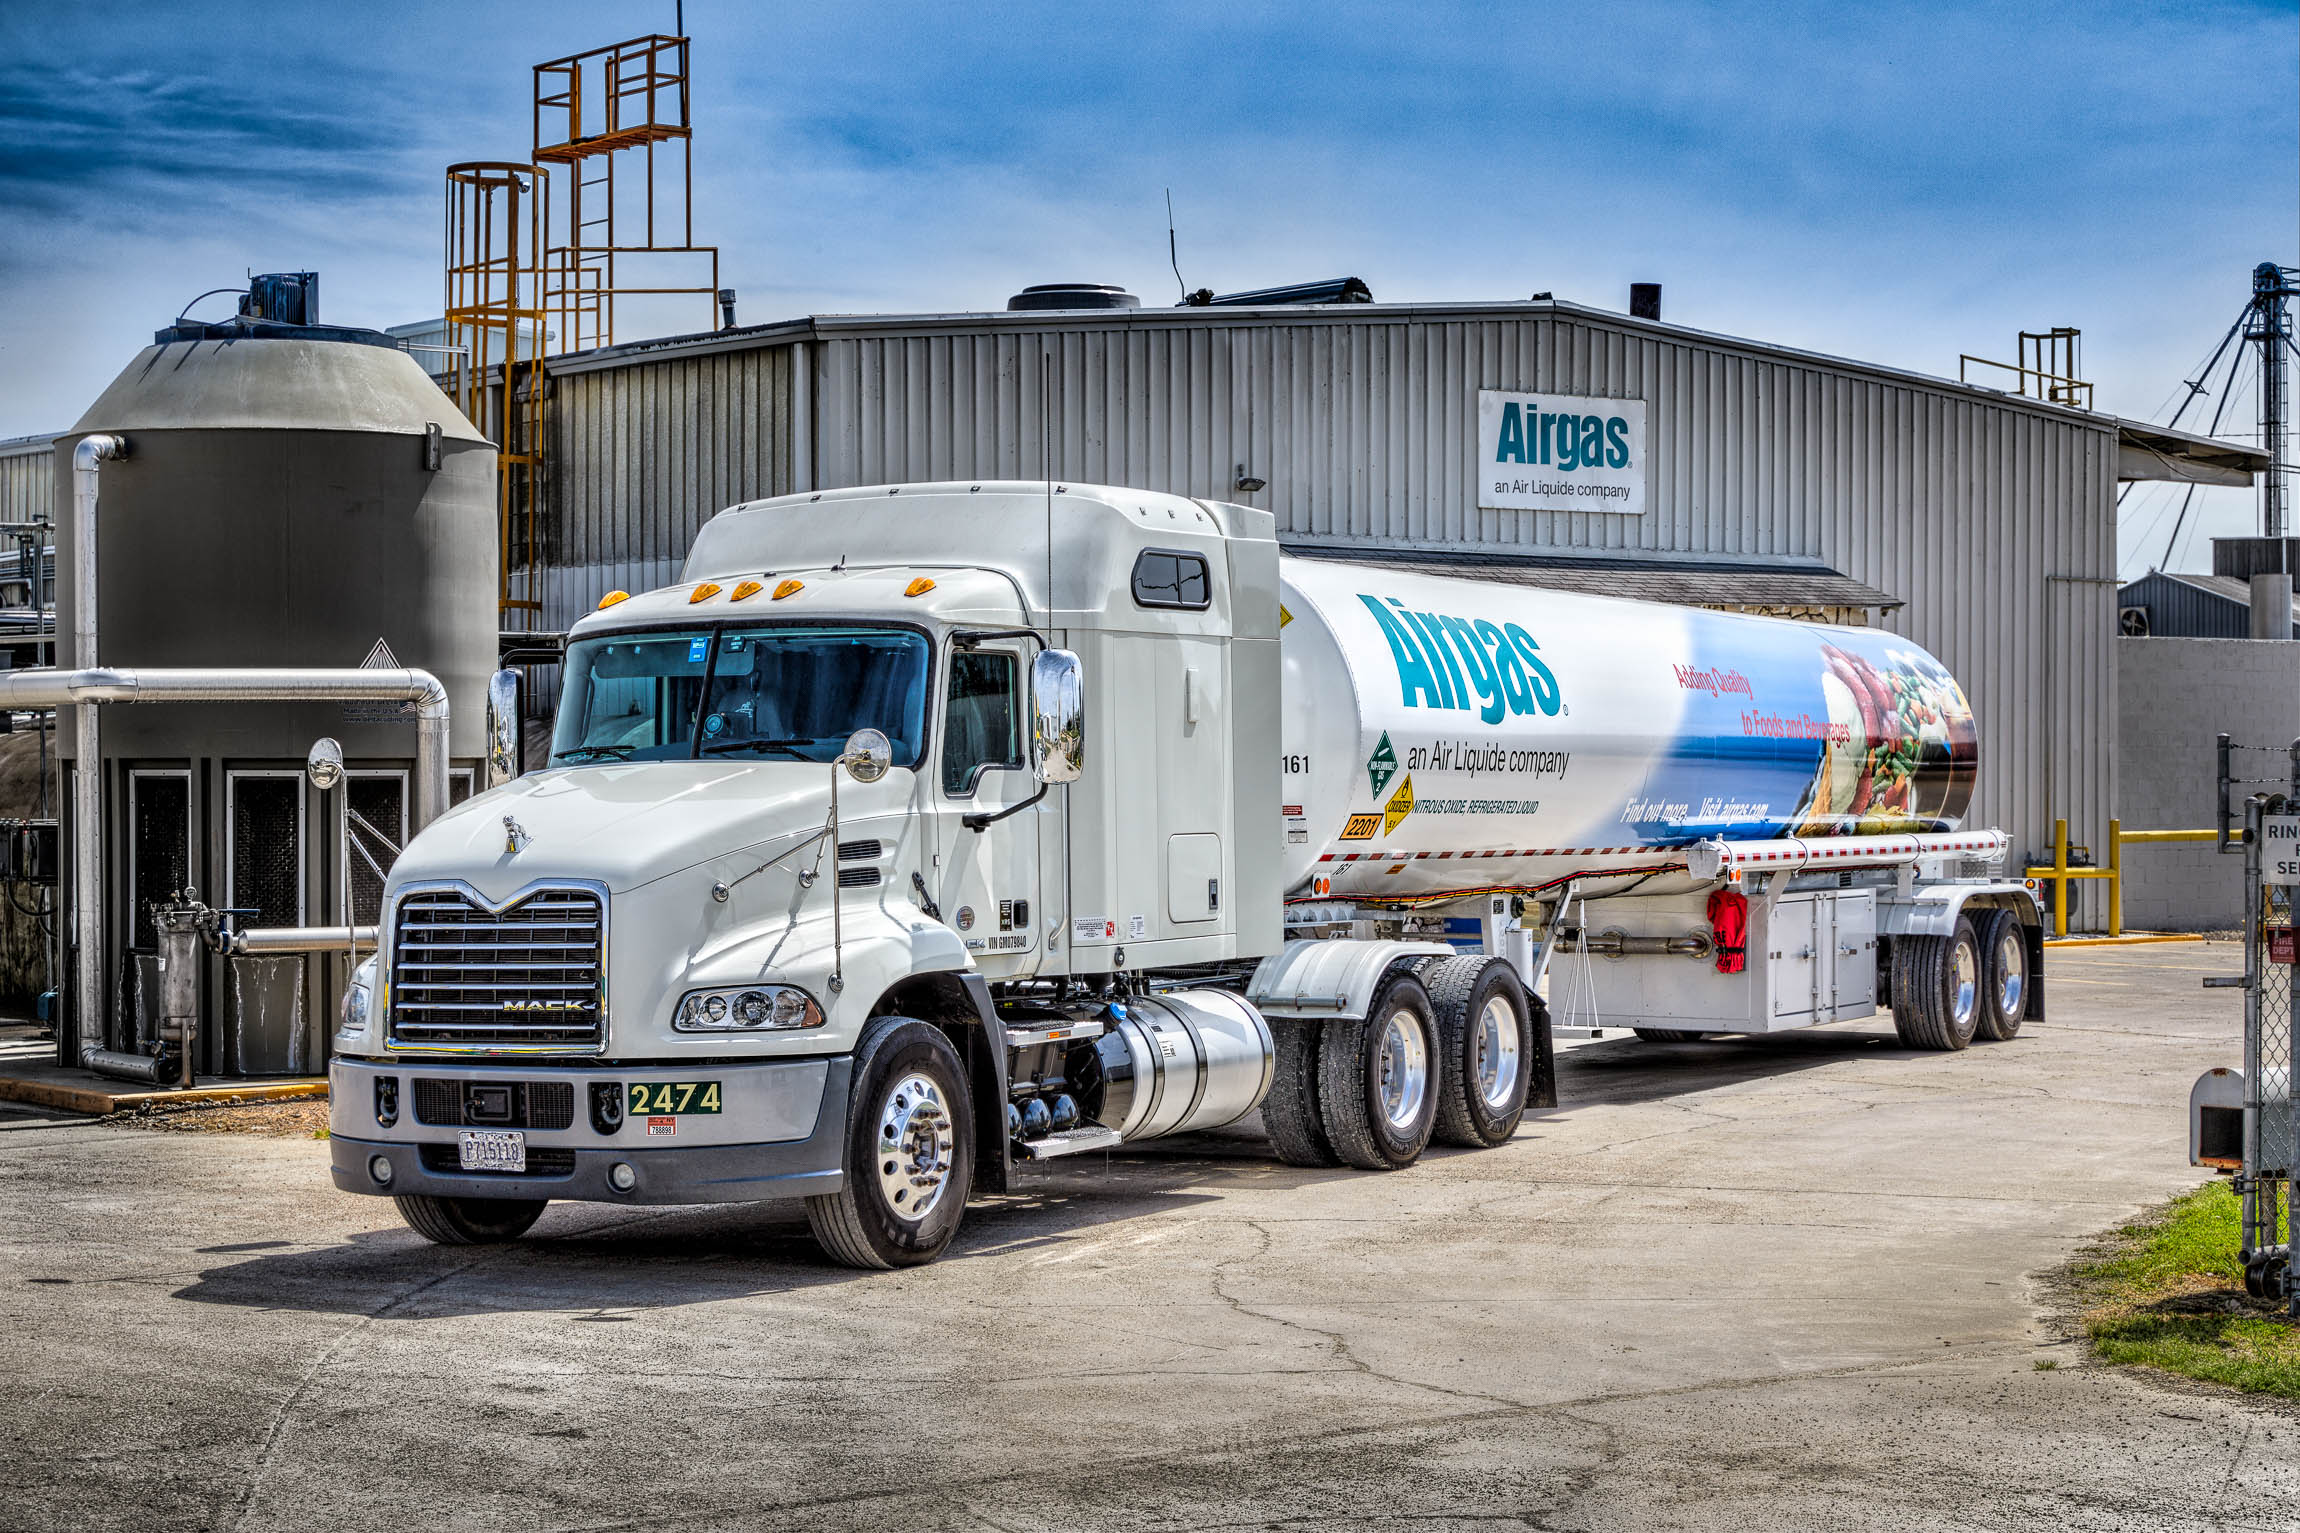 Specialty Gas Truck on Location in Atlanta by Industrial Photographer